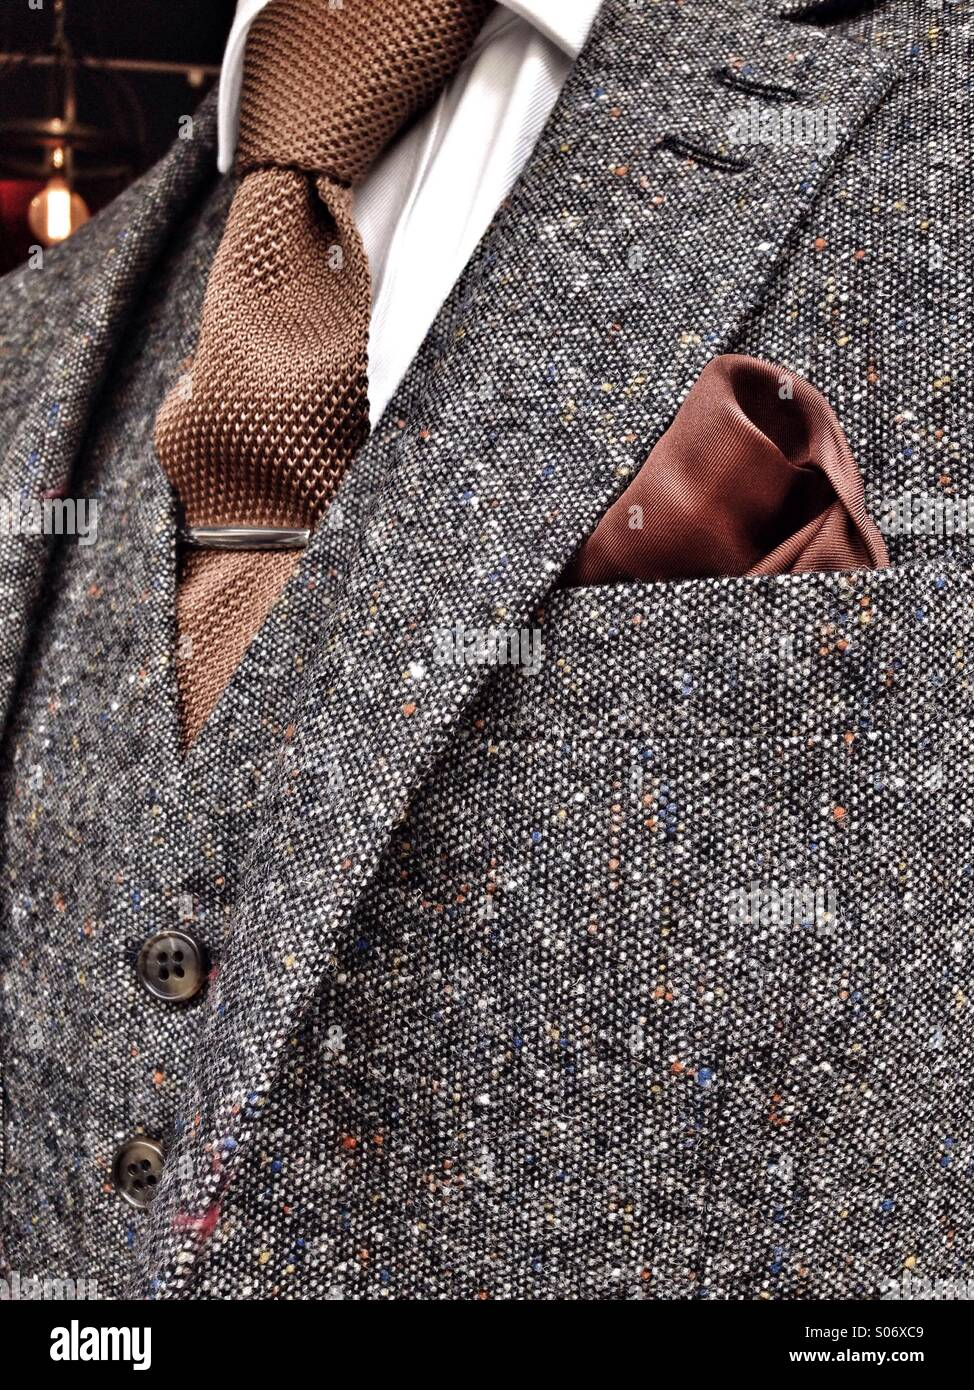 Elegant tweed jacket and vest - Stock Image